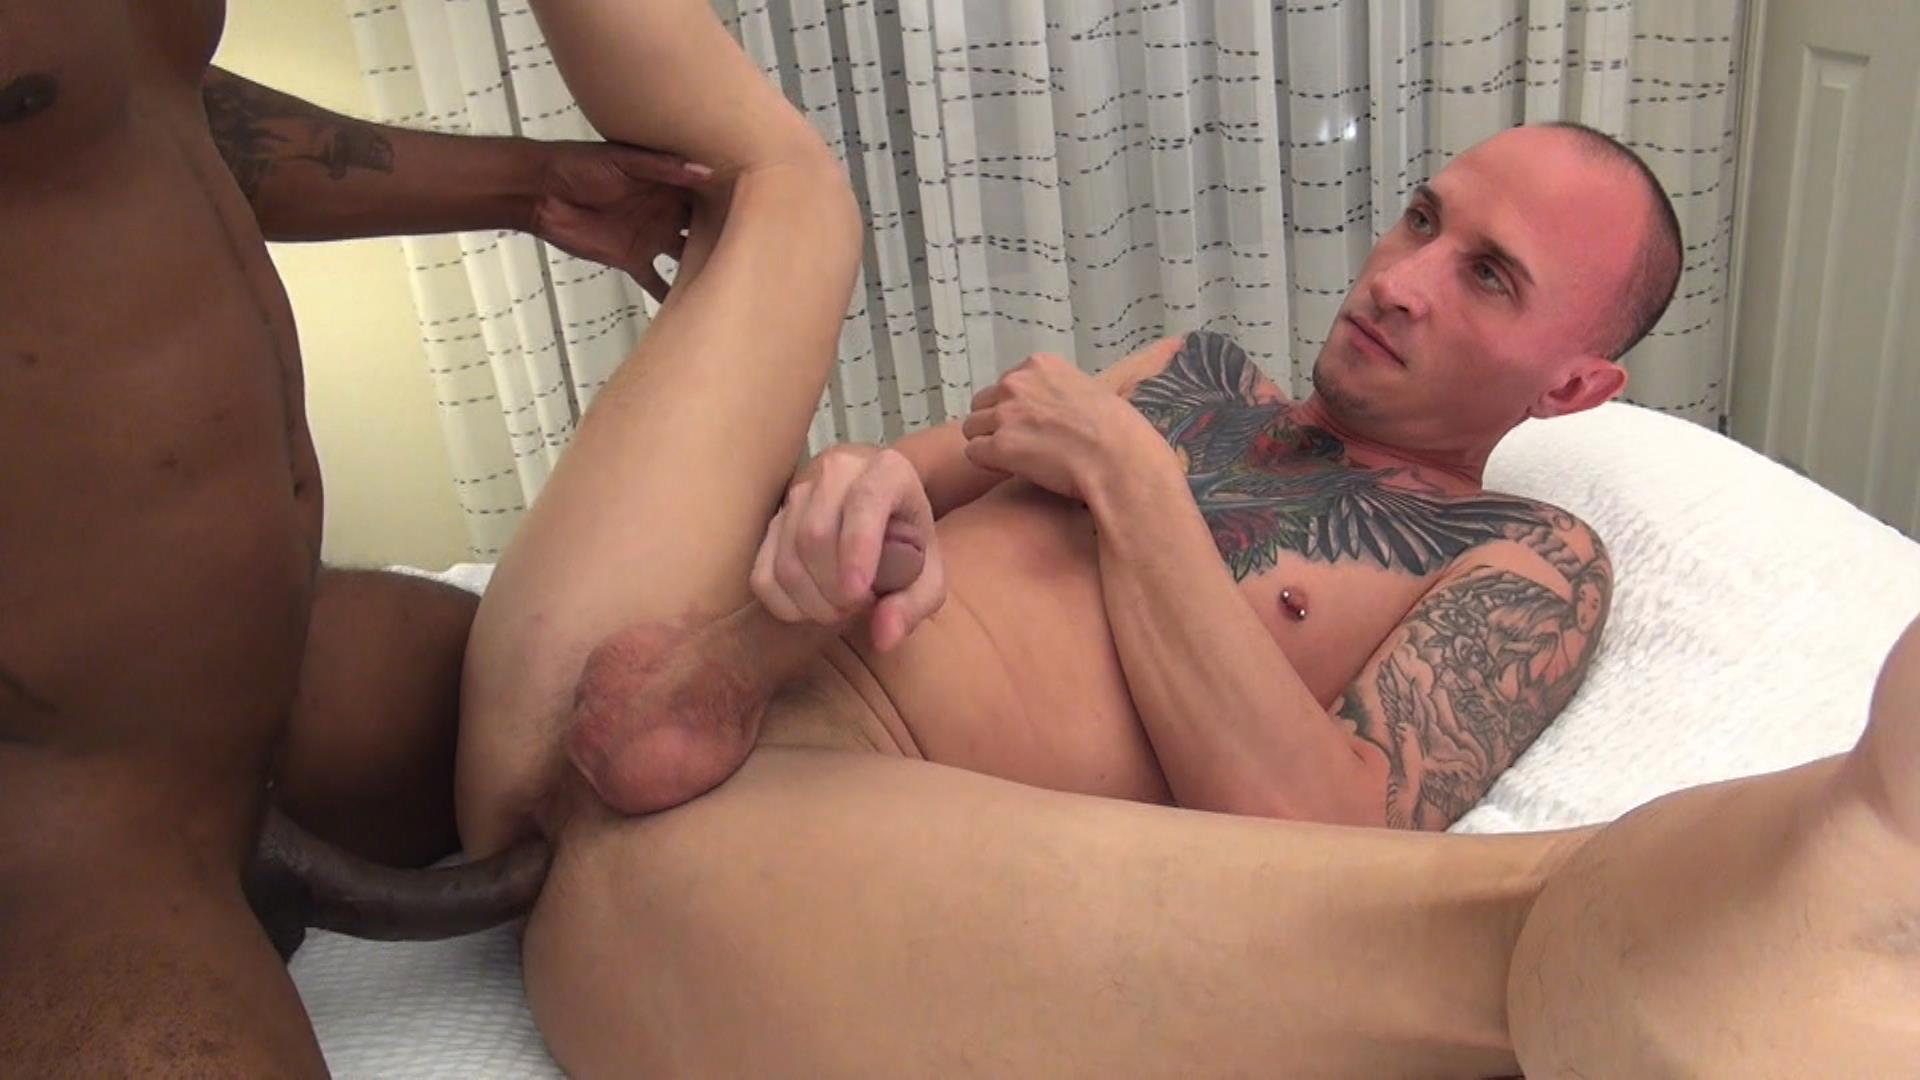 Gay Thug Videos With Manly, Rough And Tough Sex :: PornMDcom